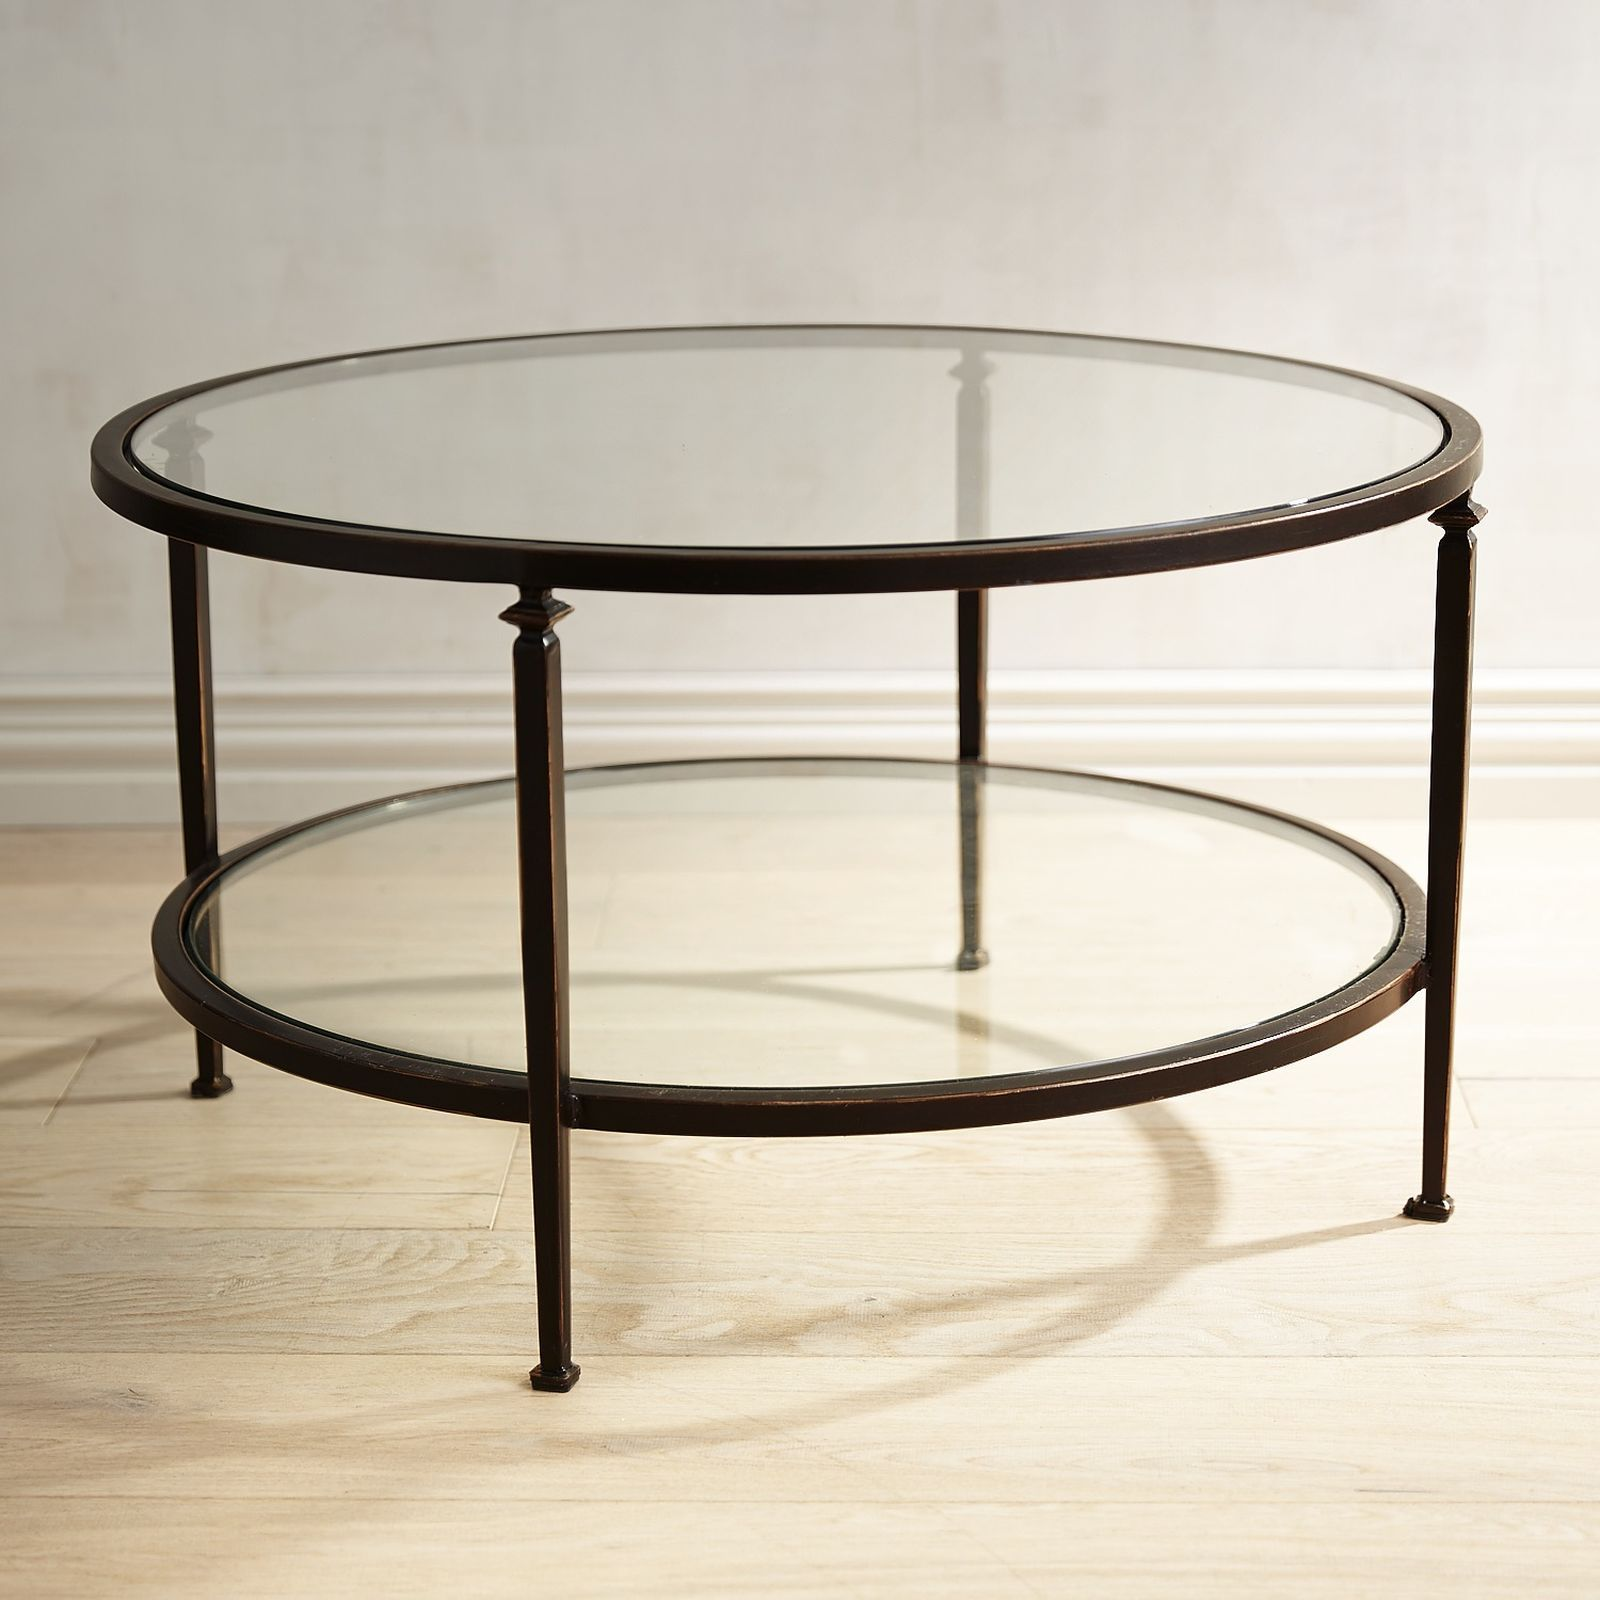 Our Lincoln Round Coffee Table Has A Slender Bronze Wrought Iron Frame And Clear Tempered